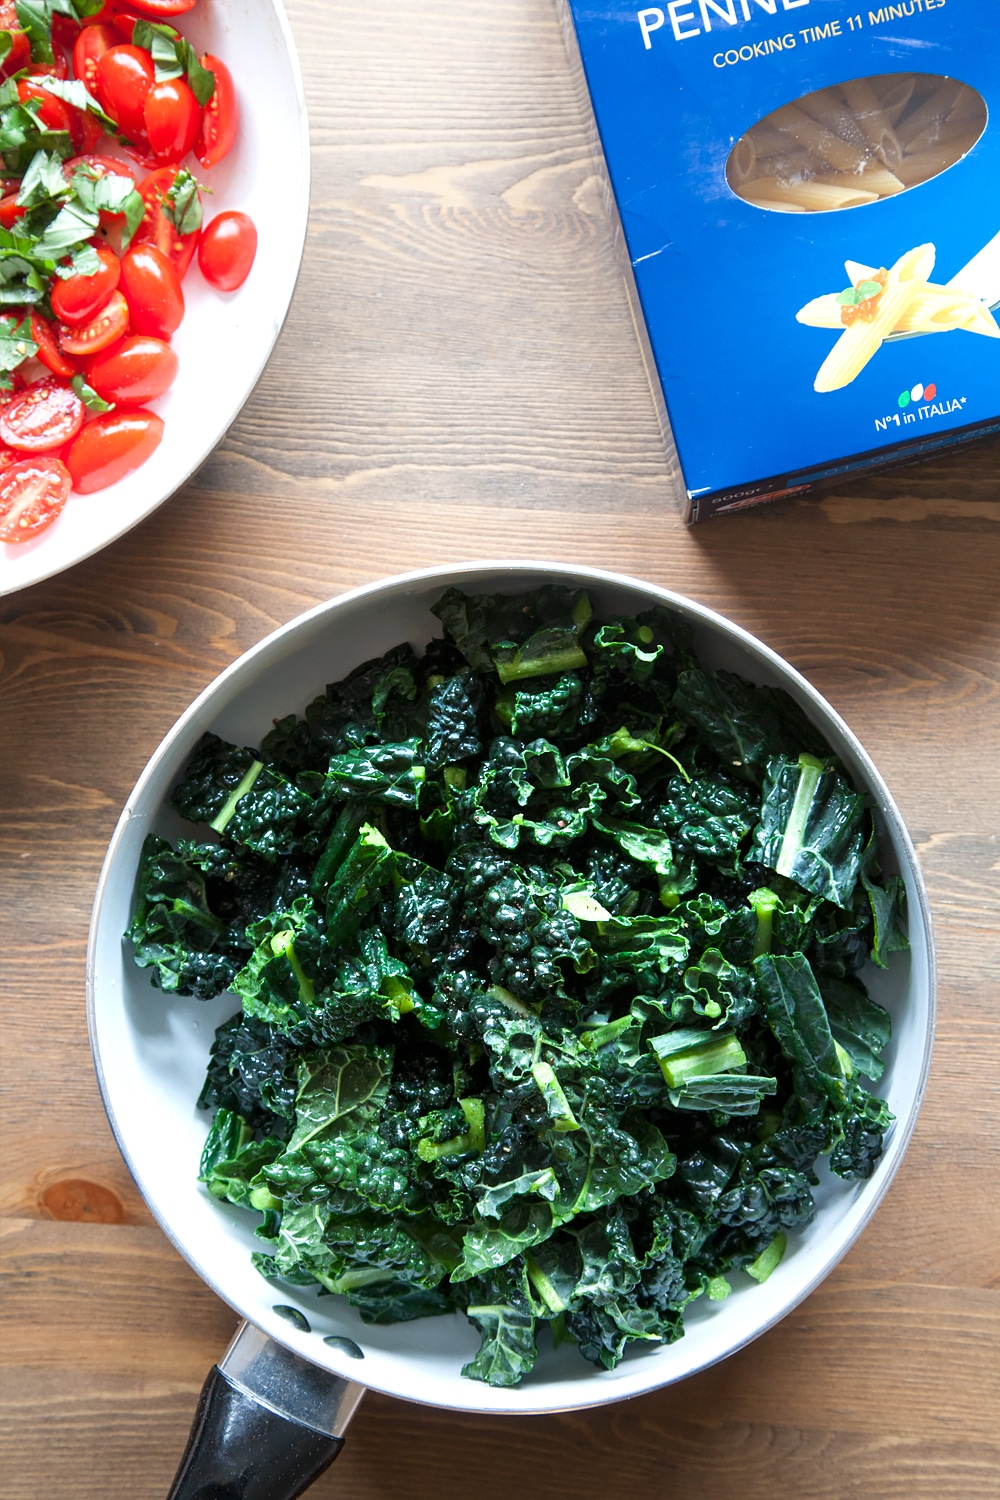 Cavalo nero (black kale) warming in a frying pan